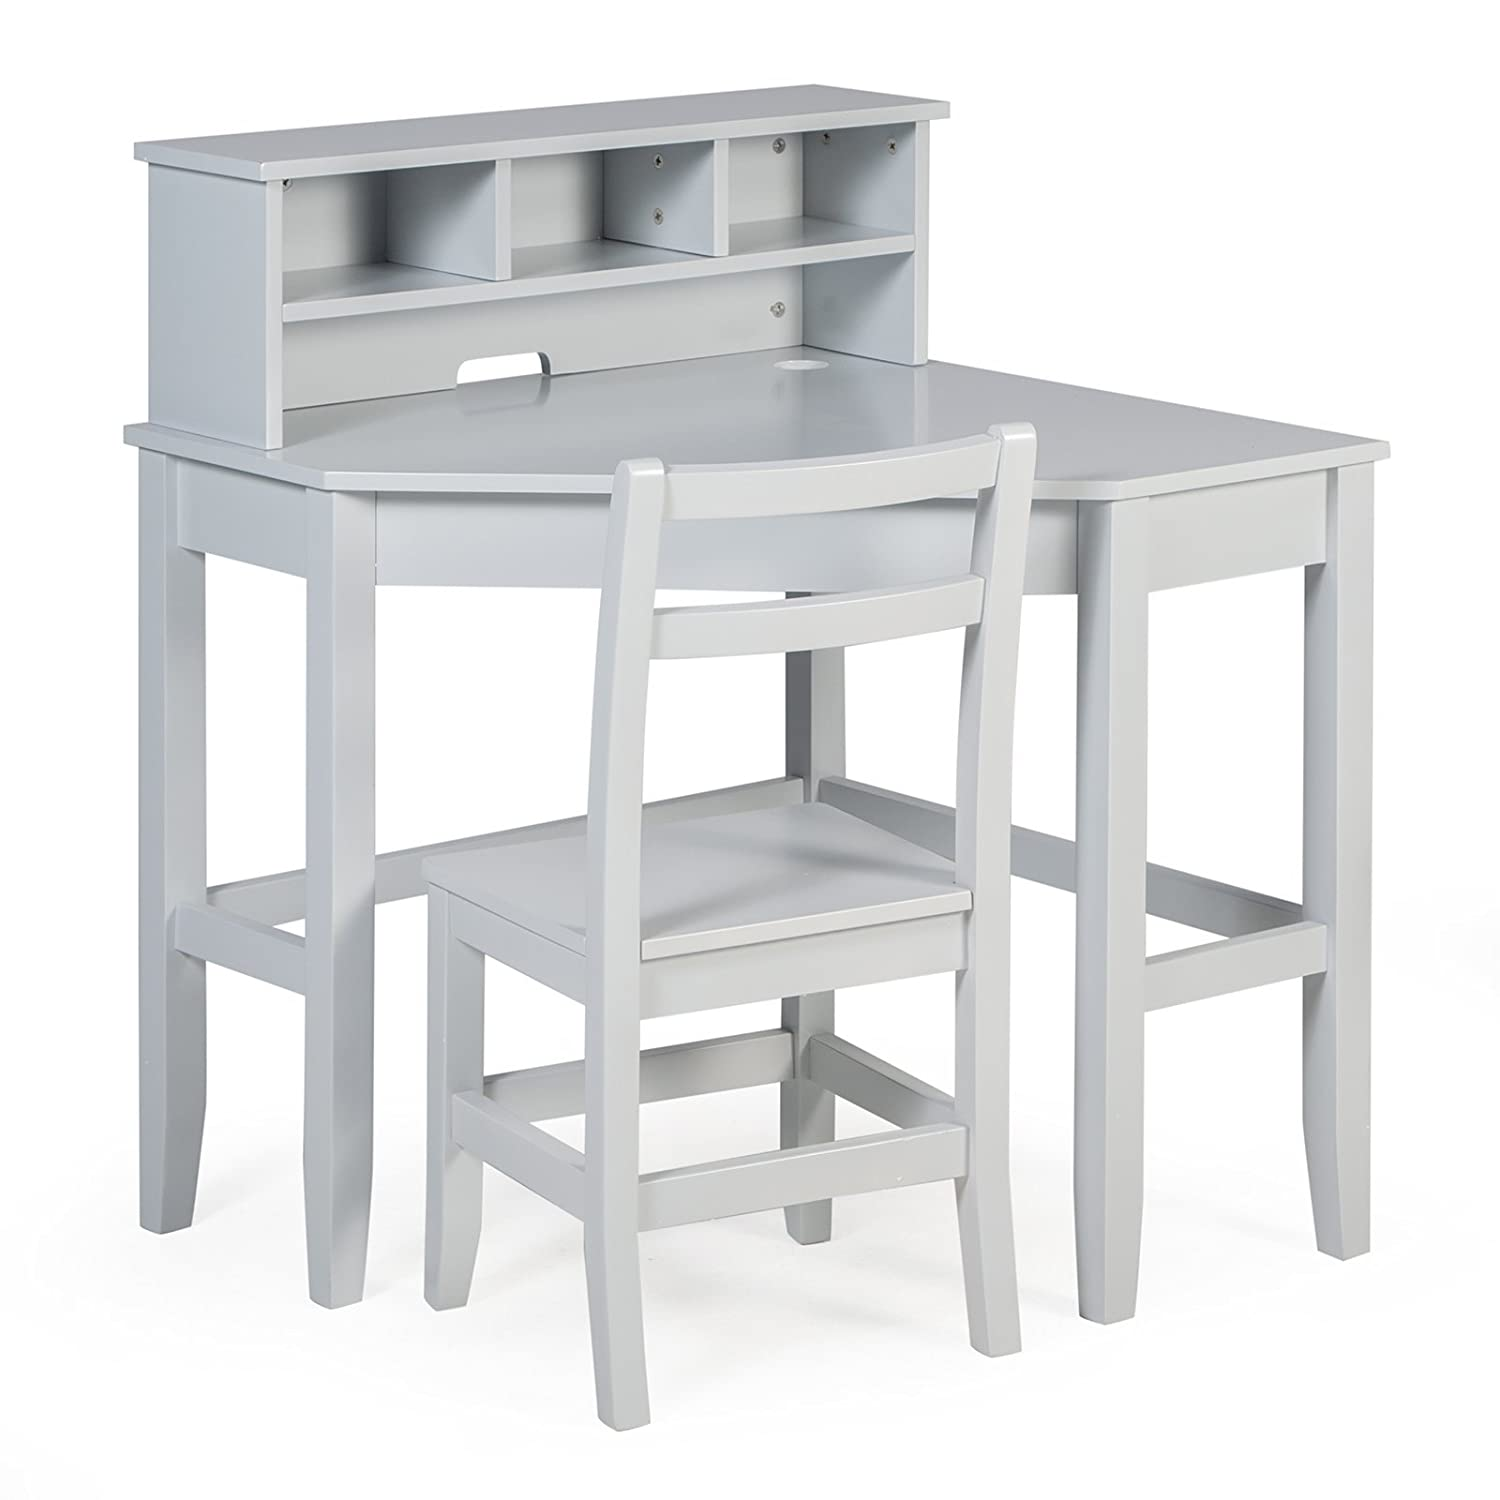 Classic Playtime Juvenile Corner Desk and Reversible Hutch with Chair - Gray ALZ1202